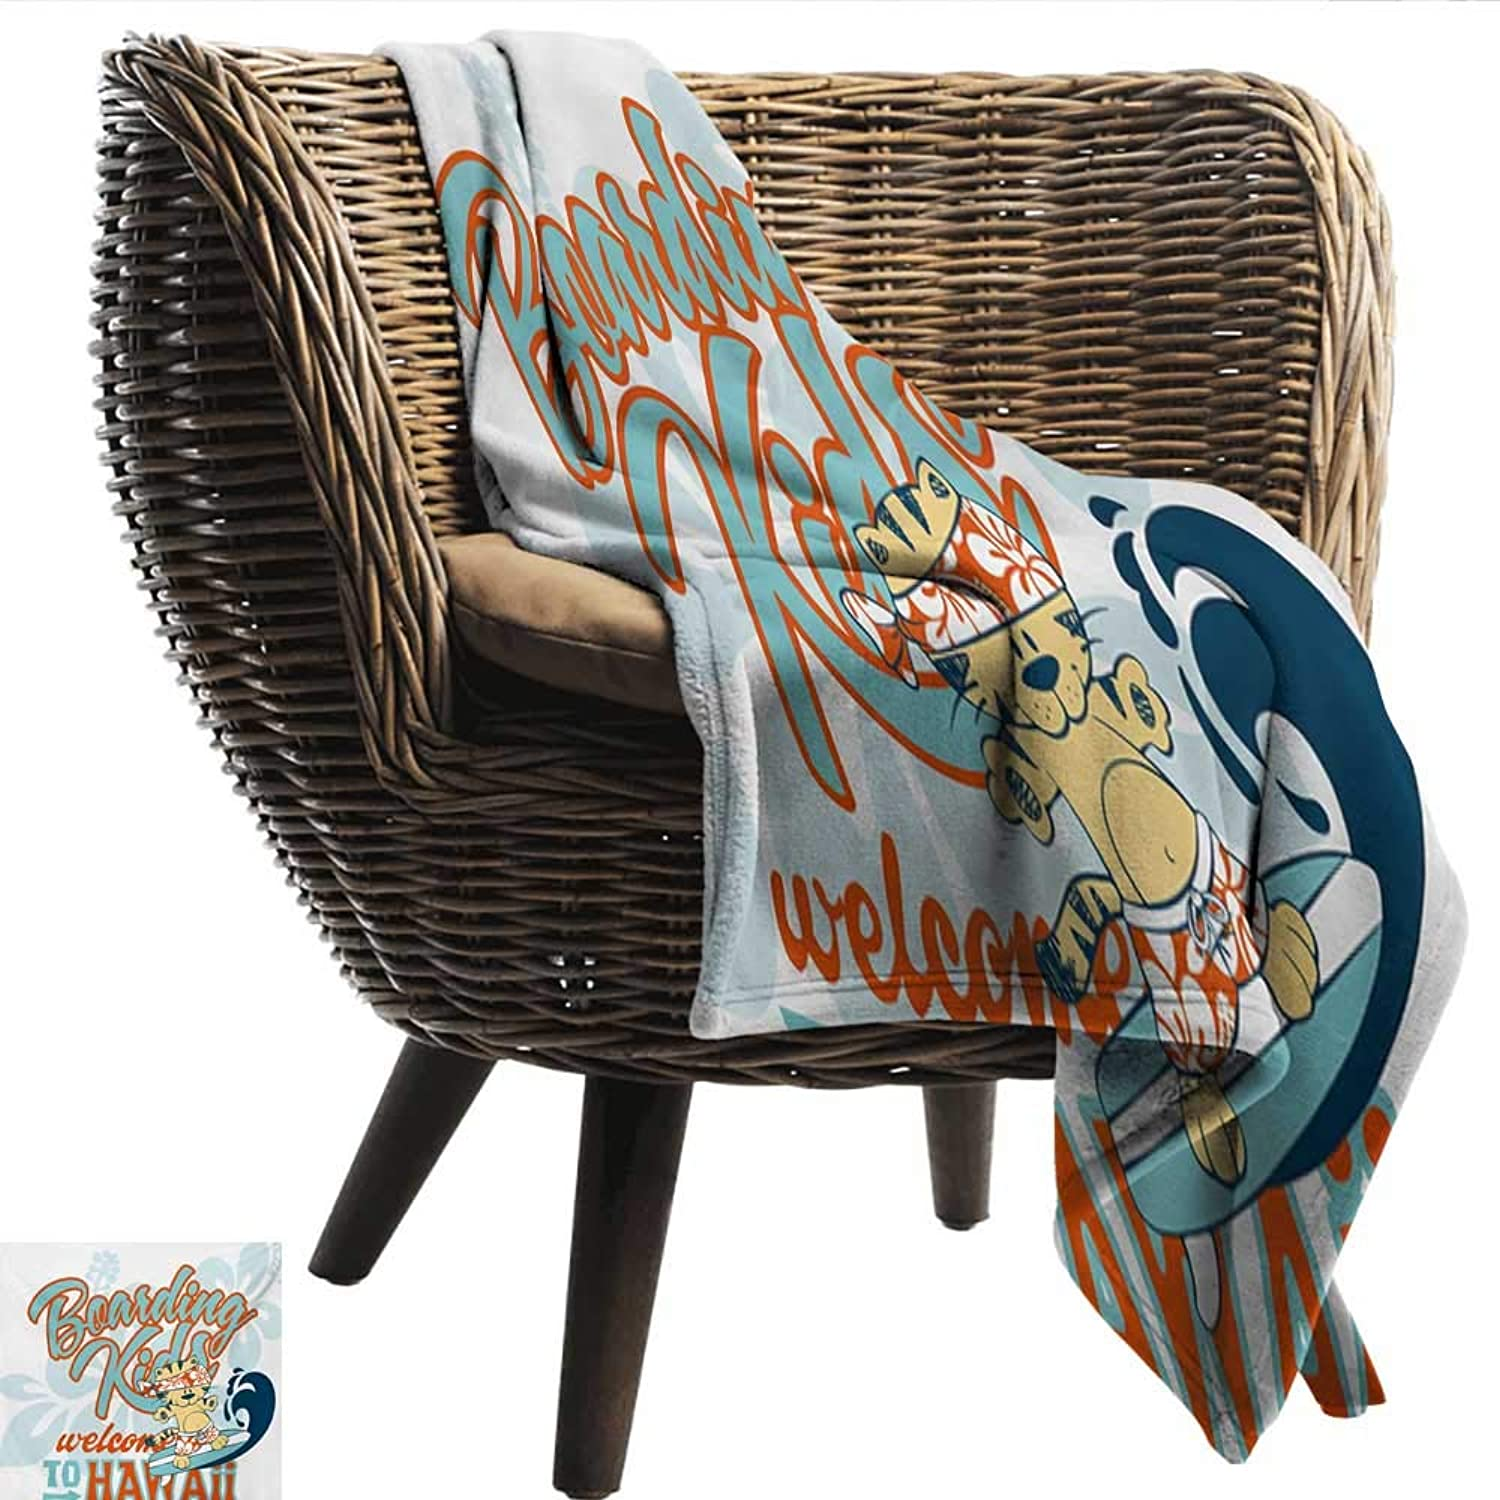 EwaskyOnline Toddler Blanket Cute Kitten Surfing Boarding Kids Hawaii Animal Fun Abstract Floral Blanket on Bed Sofa Bedding 60  W x 51  L Turquoise orange Dark bluee